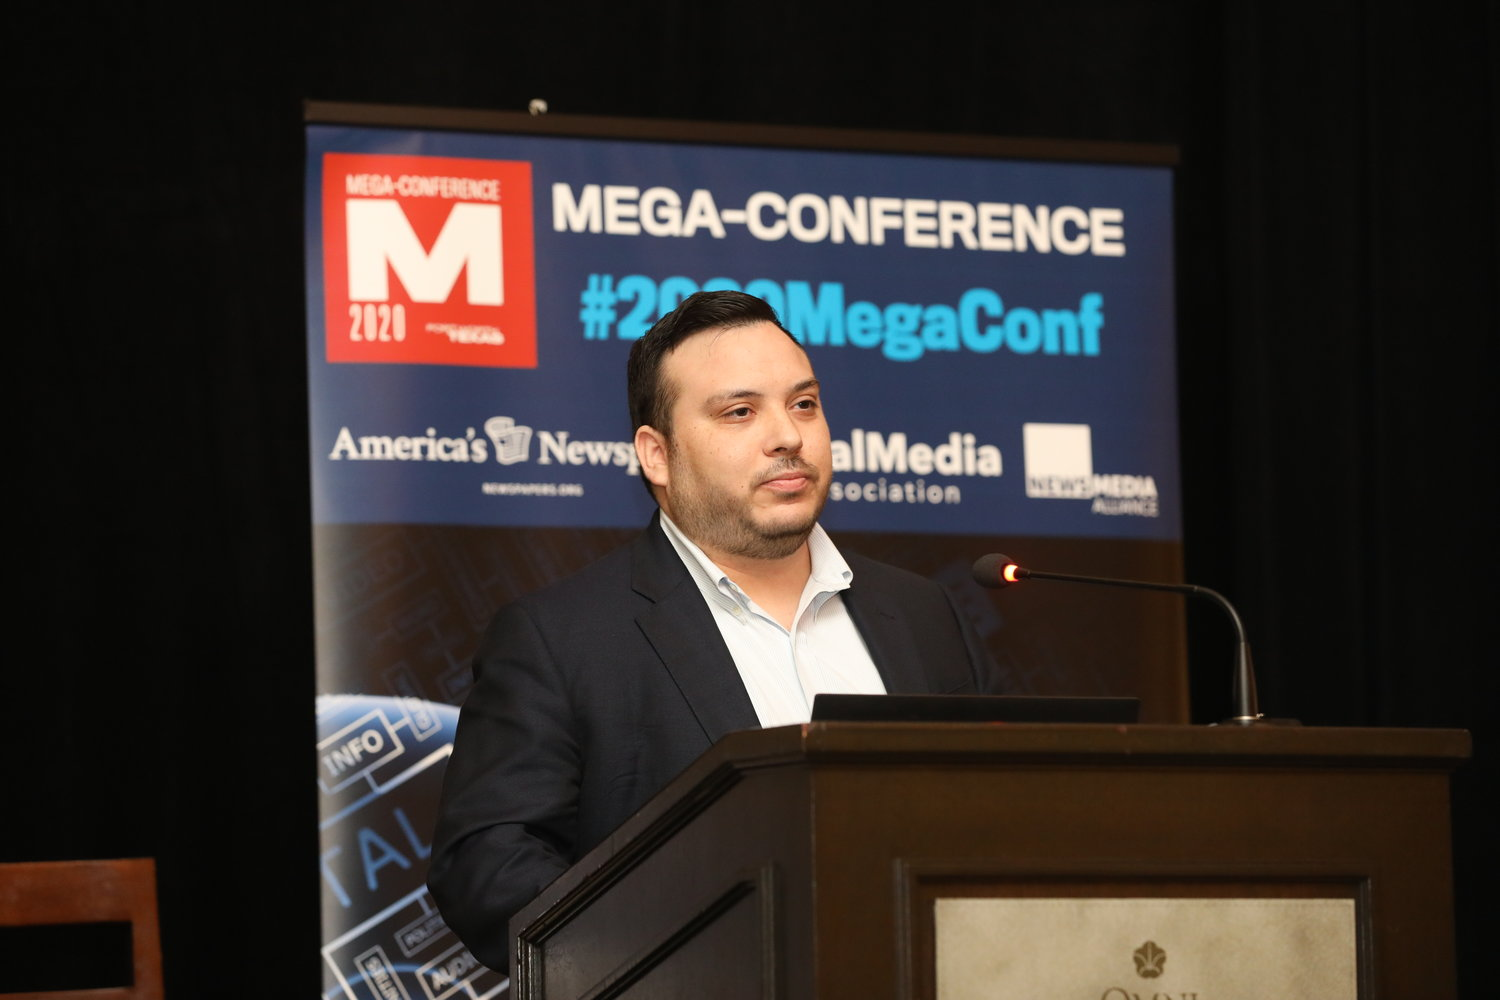 Zack Richner of Arrandale Ventures discusses an initiative to leverage the power of community publications to promote and profit from high-growth businesses. Tuesday, Feb, 18, at the 2020 Mega-Conference. (Photo by Bob Booth)